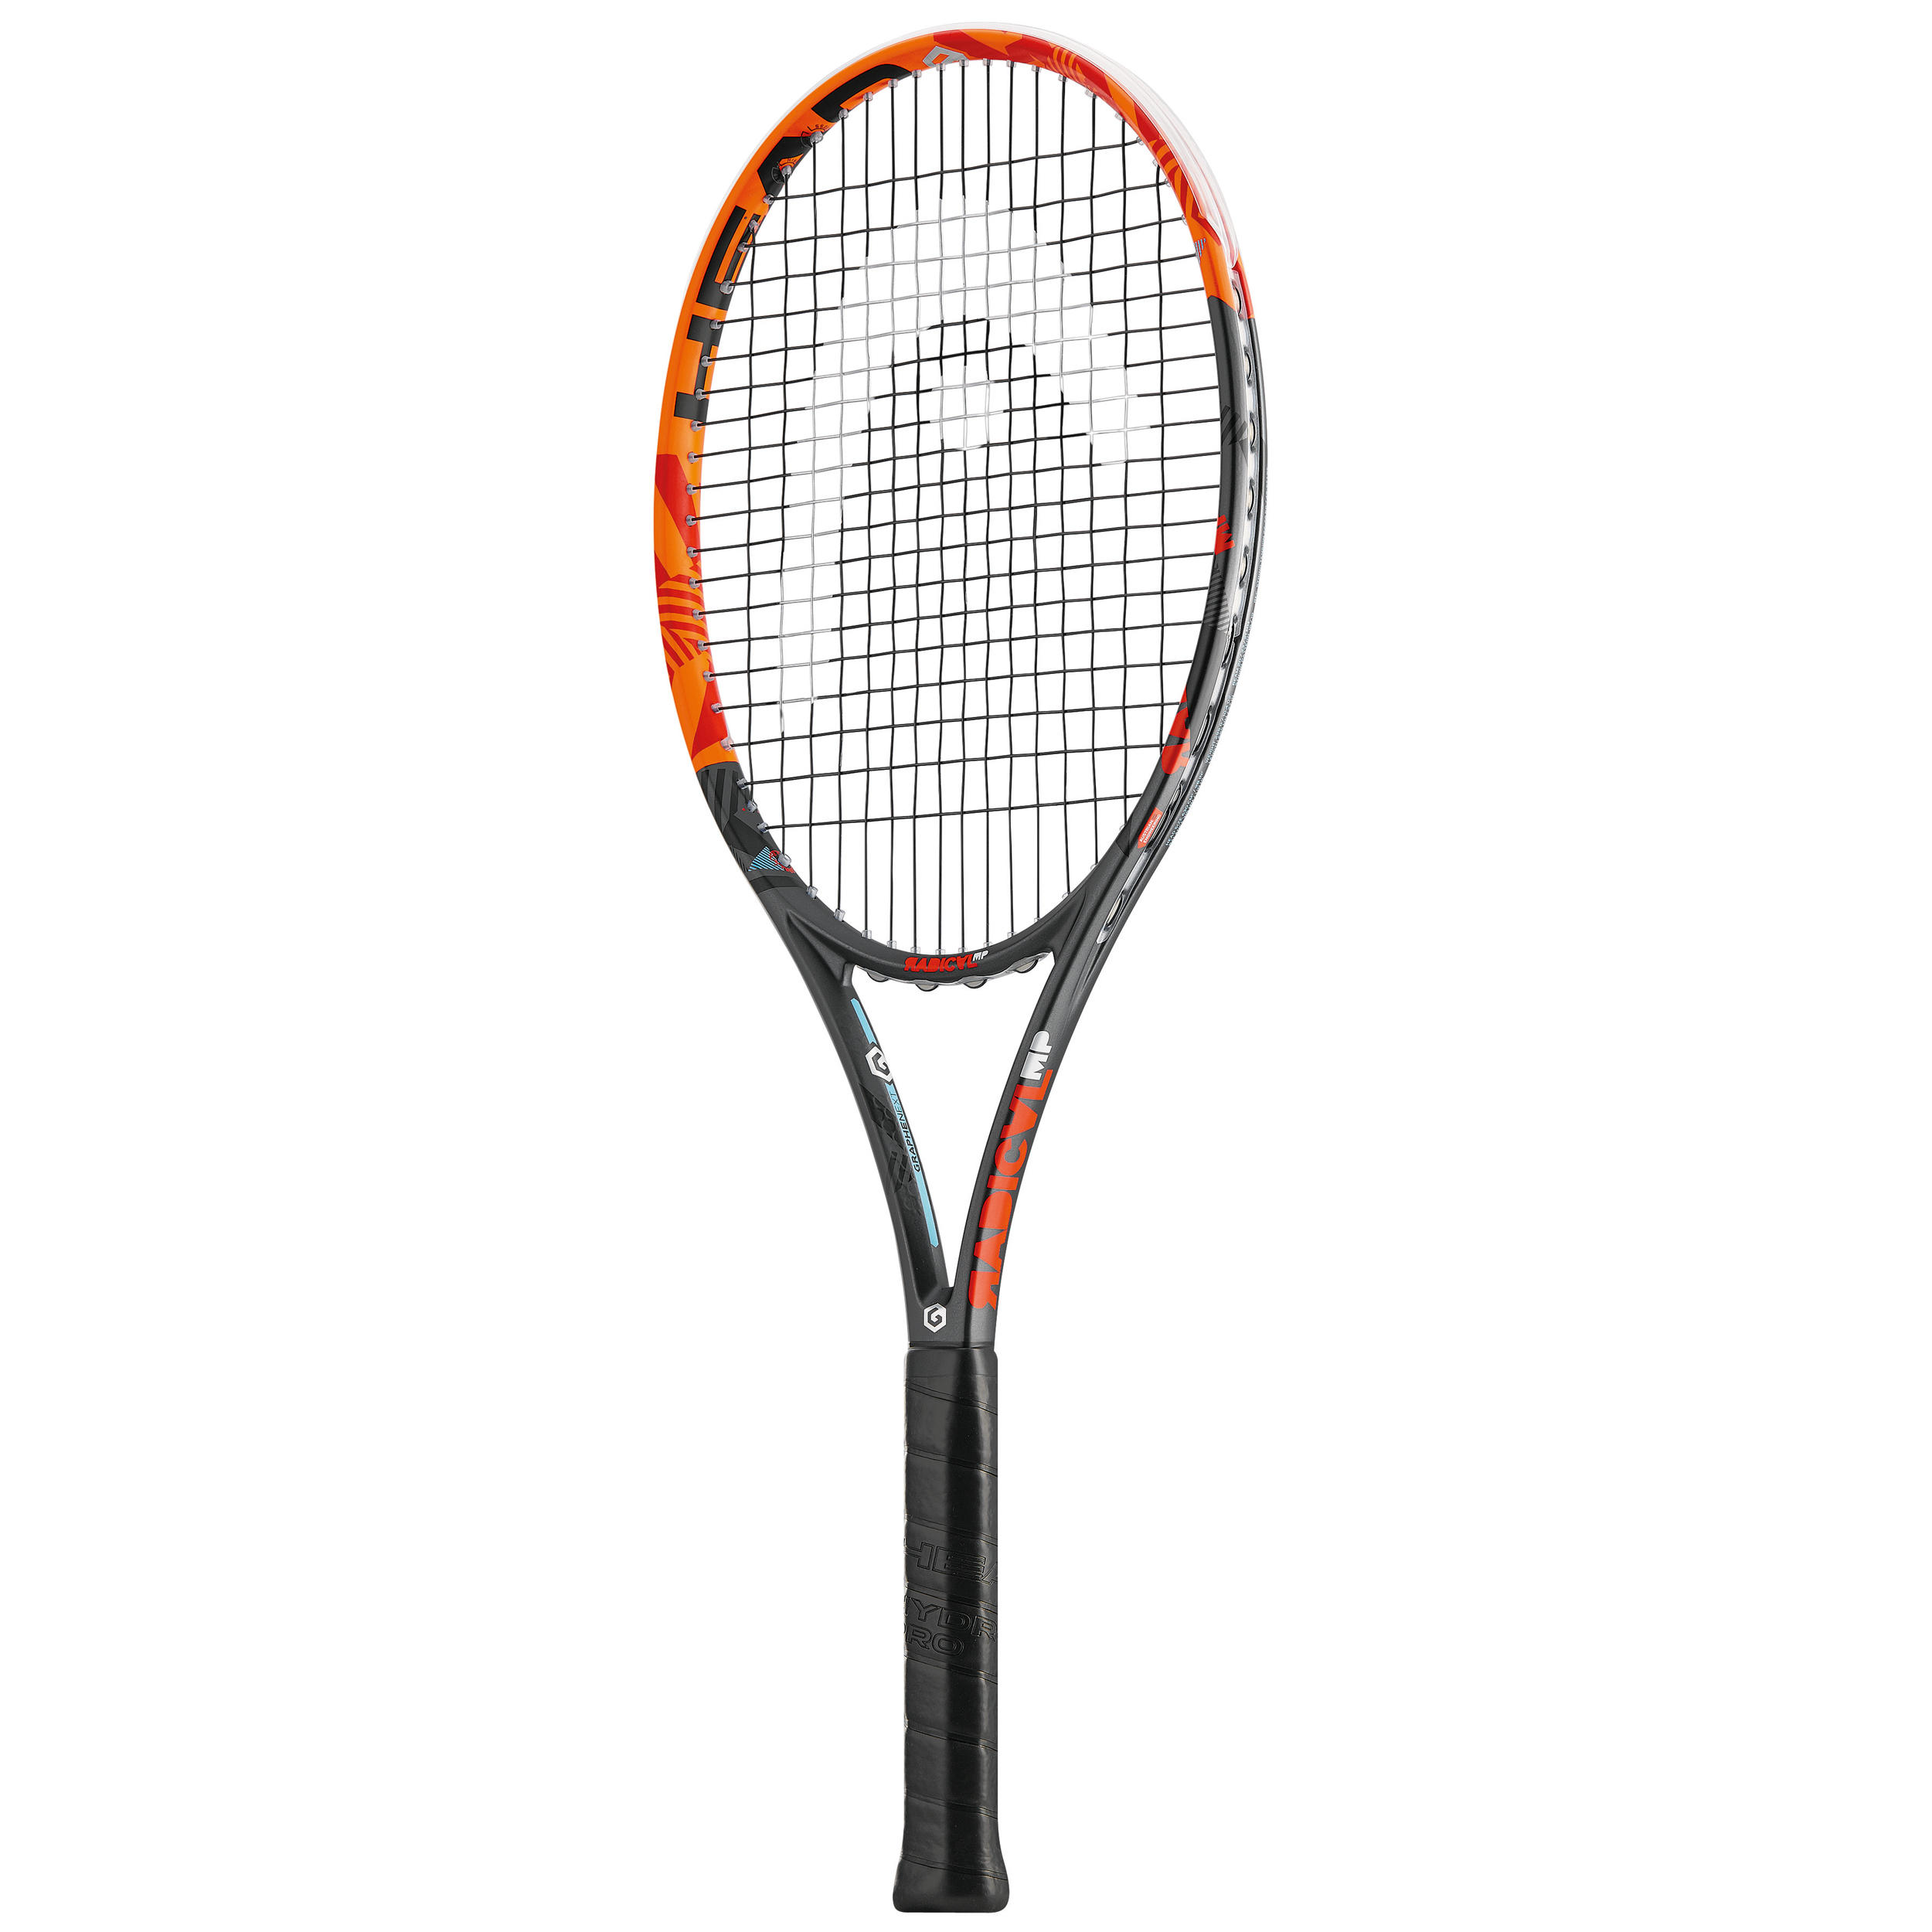 Head Tennisracket Radical MP oranje/zwart